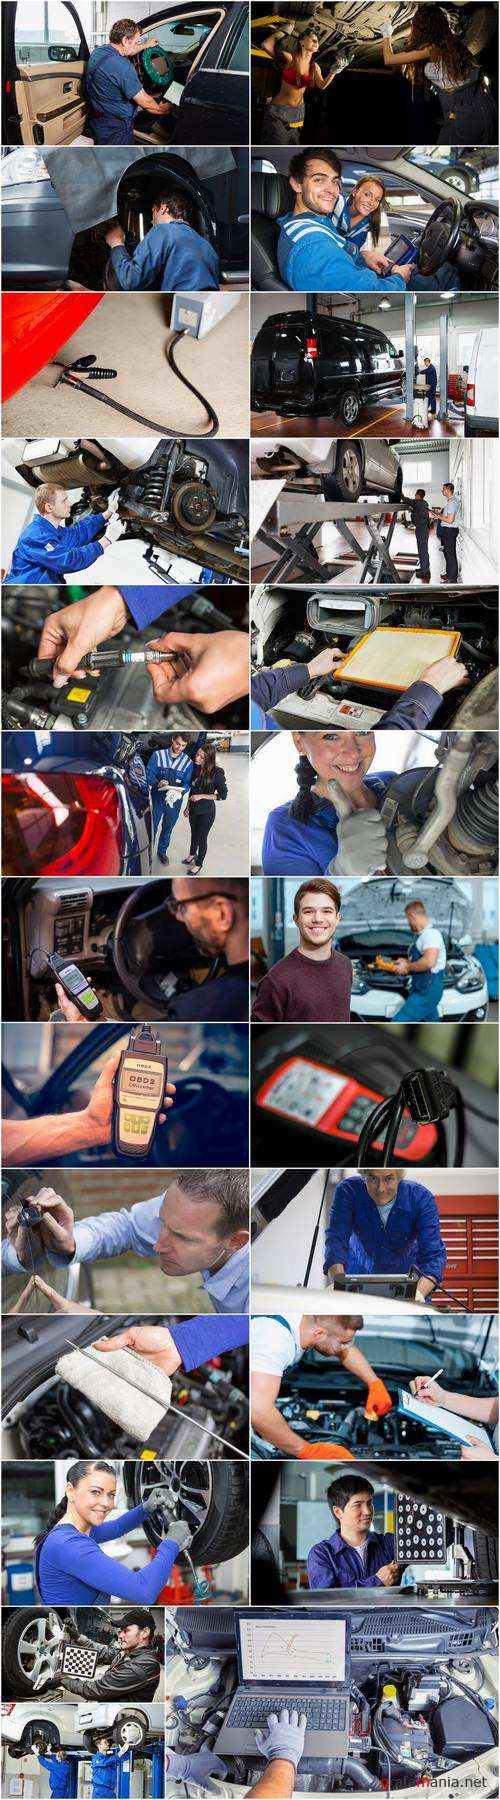 Car diagnostics car mechanic auto repair shop 25 HQ Jpeg